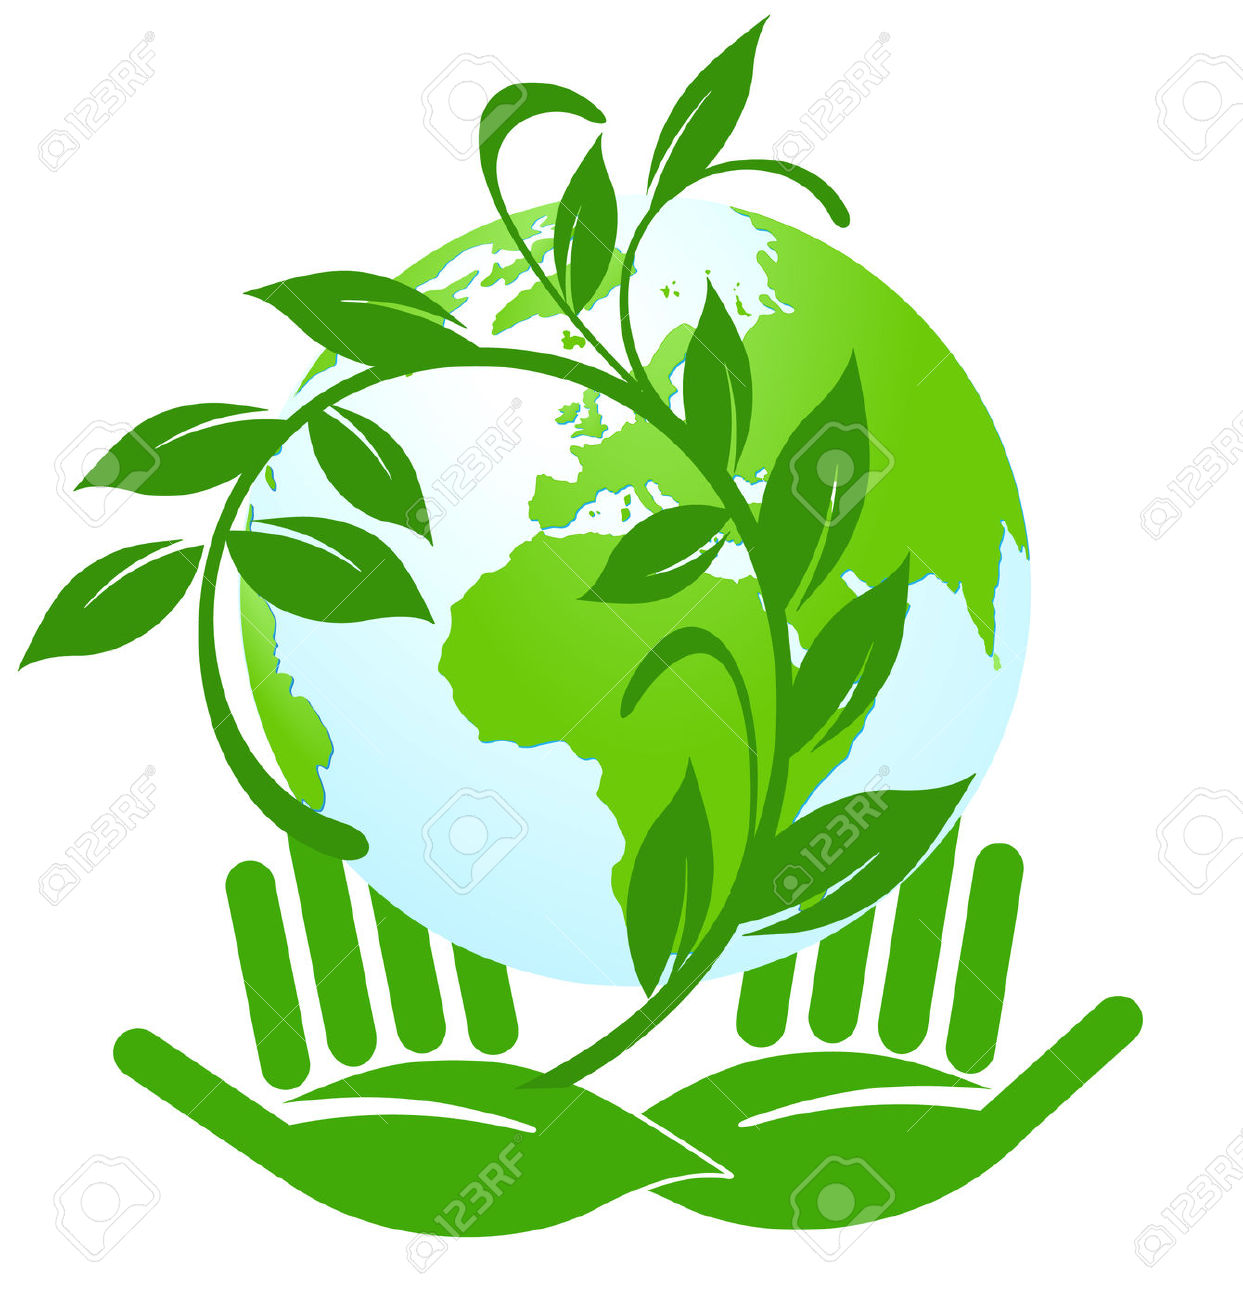 Climate Change Clipart At Getdrawings Free For Personal Use